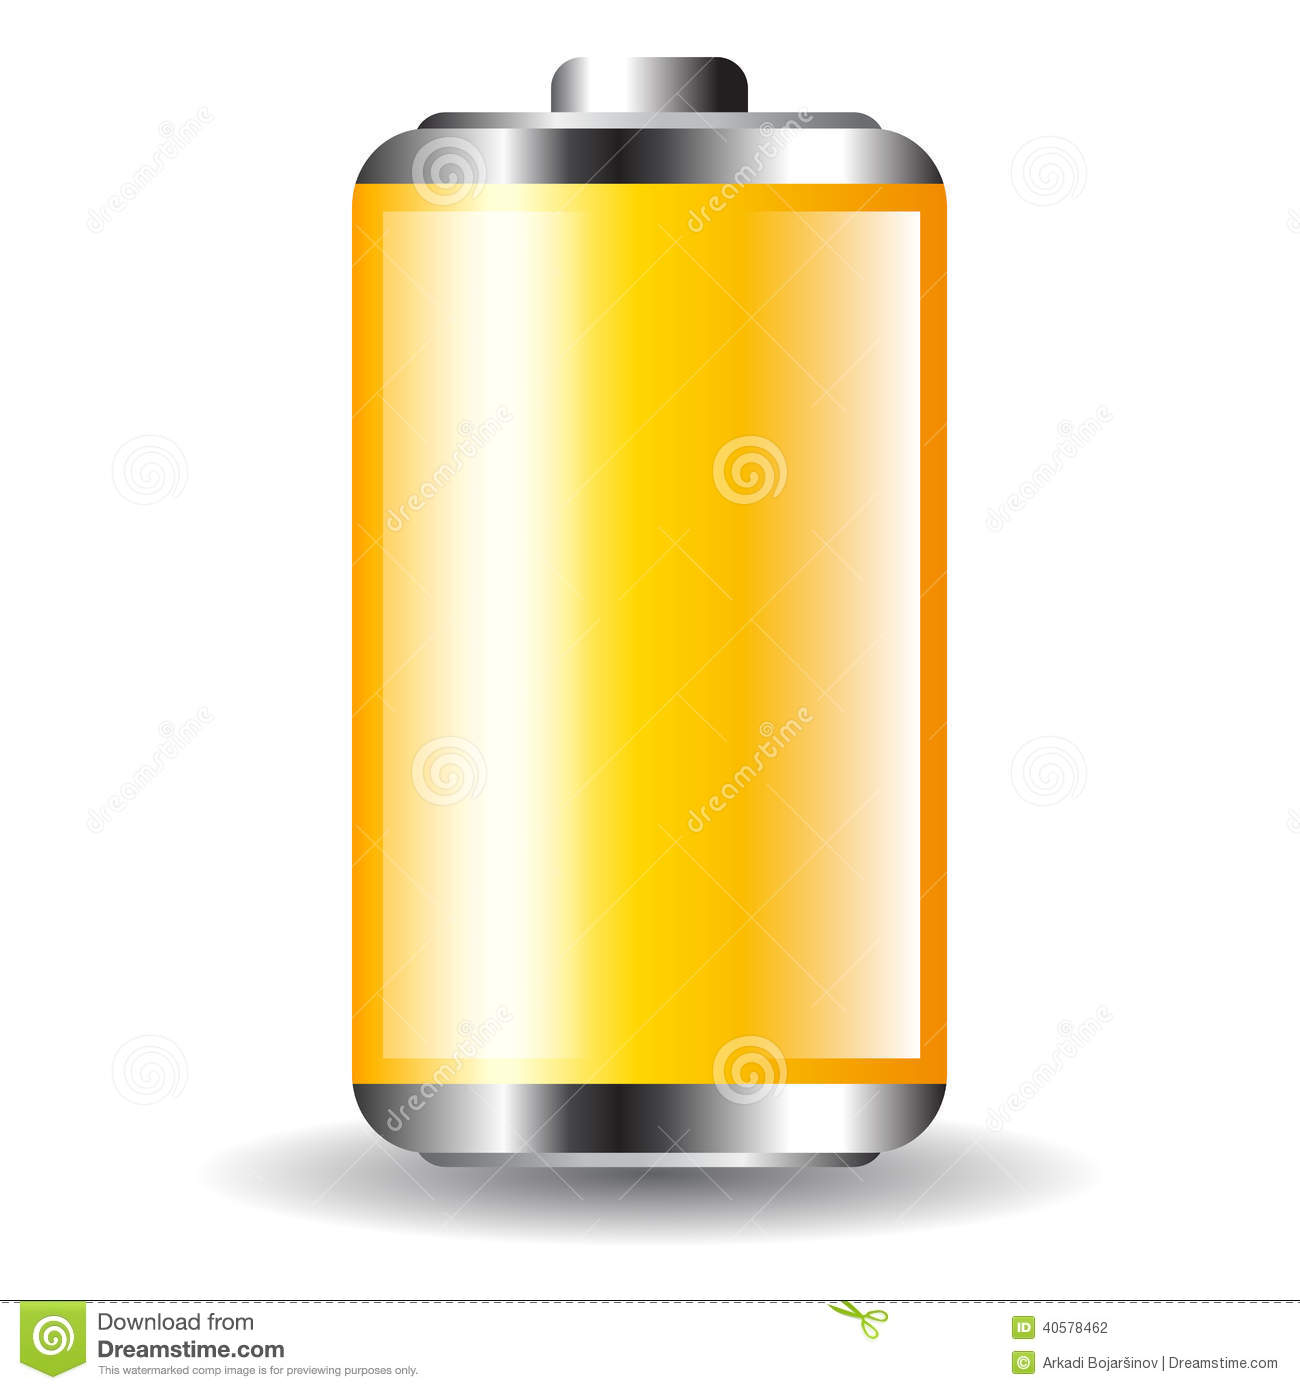 Battery Icon Stock Vector - Image: 40578462